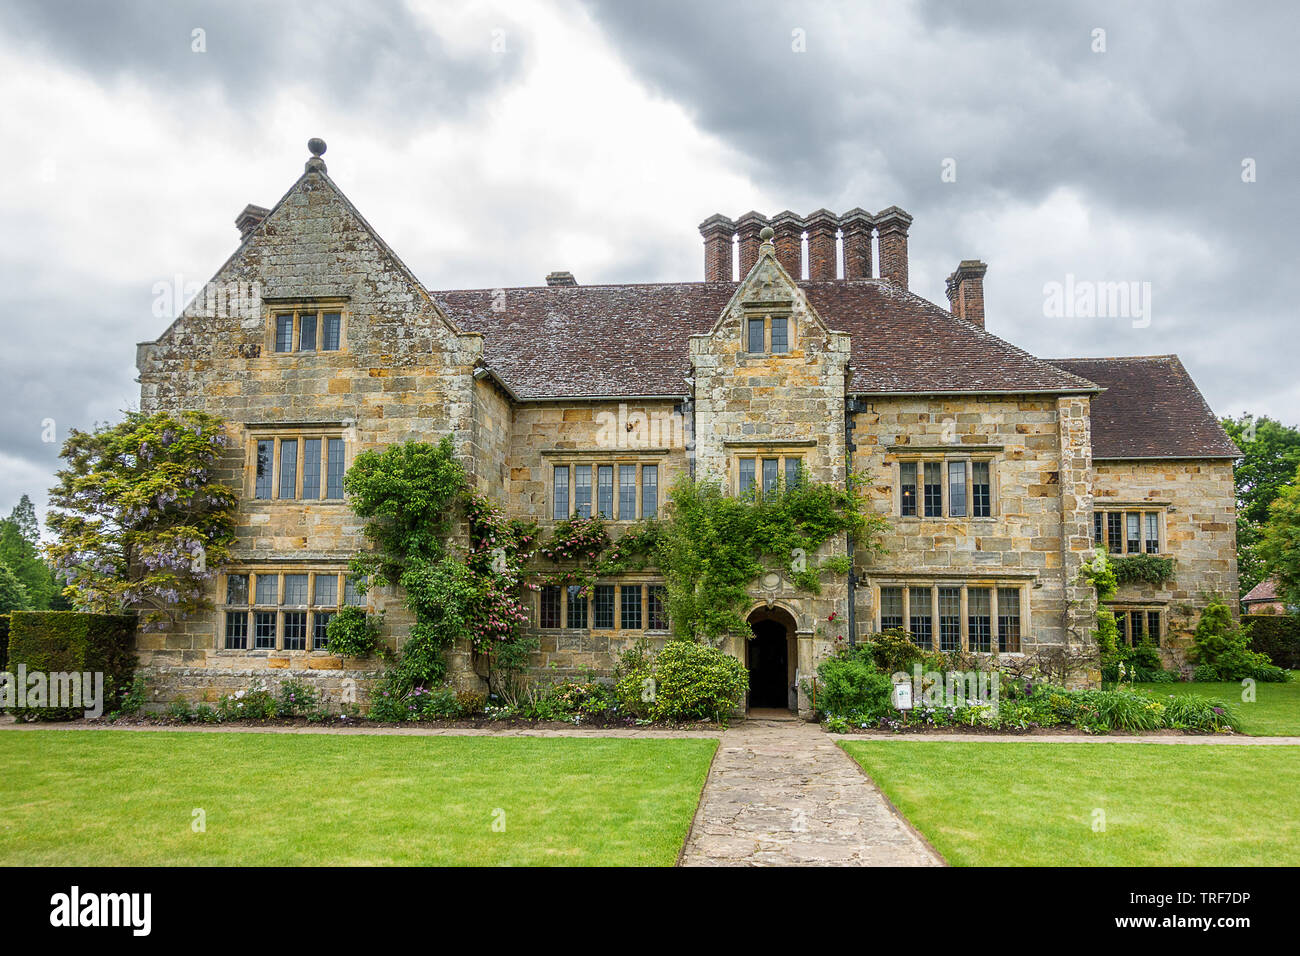 Indefinido política chico  Batemans in Burwash the former home of Rudyard Kipling Stock Photo - Alamy